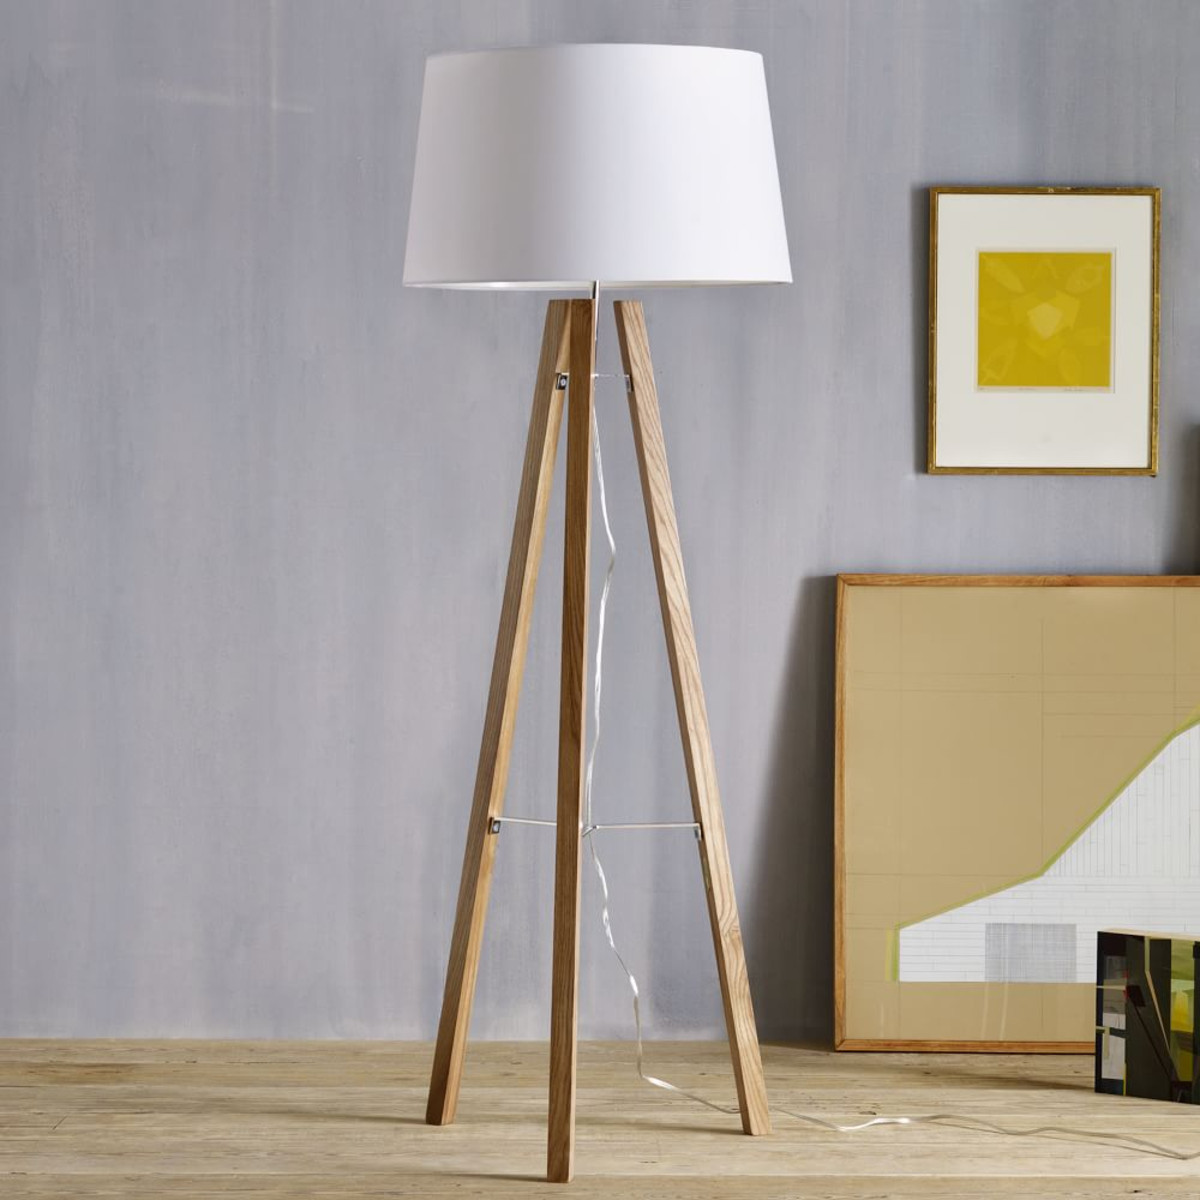 Top 10 floor lamps wood 2018 warisan lighting top 10 floor lamps wood 2018 geotapseo Gallery